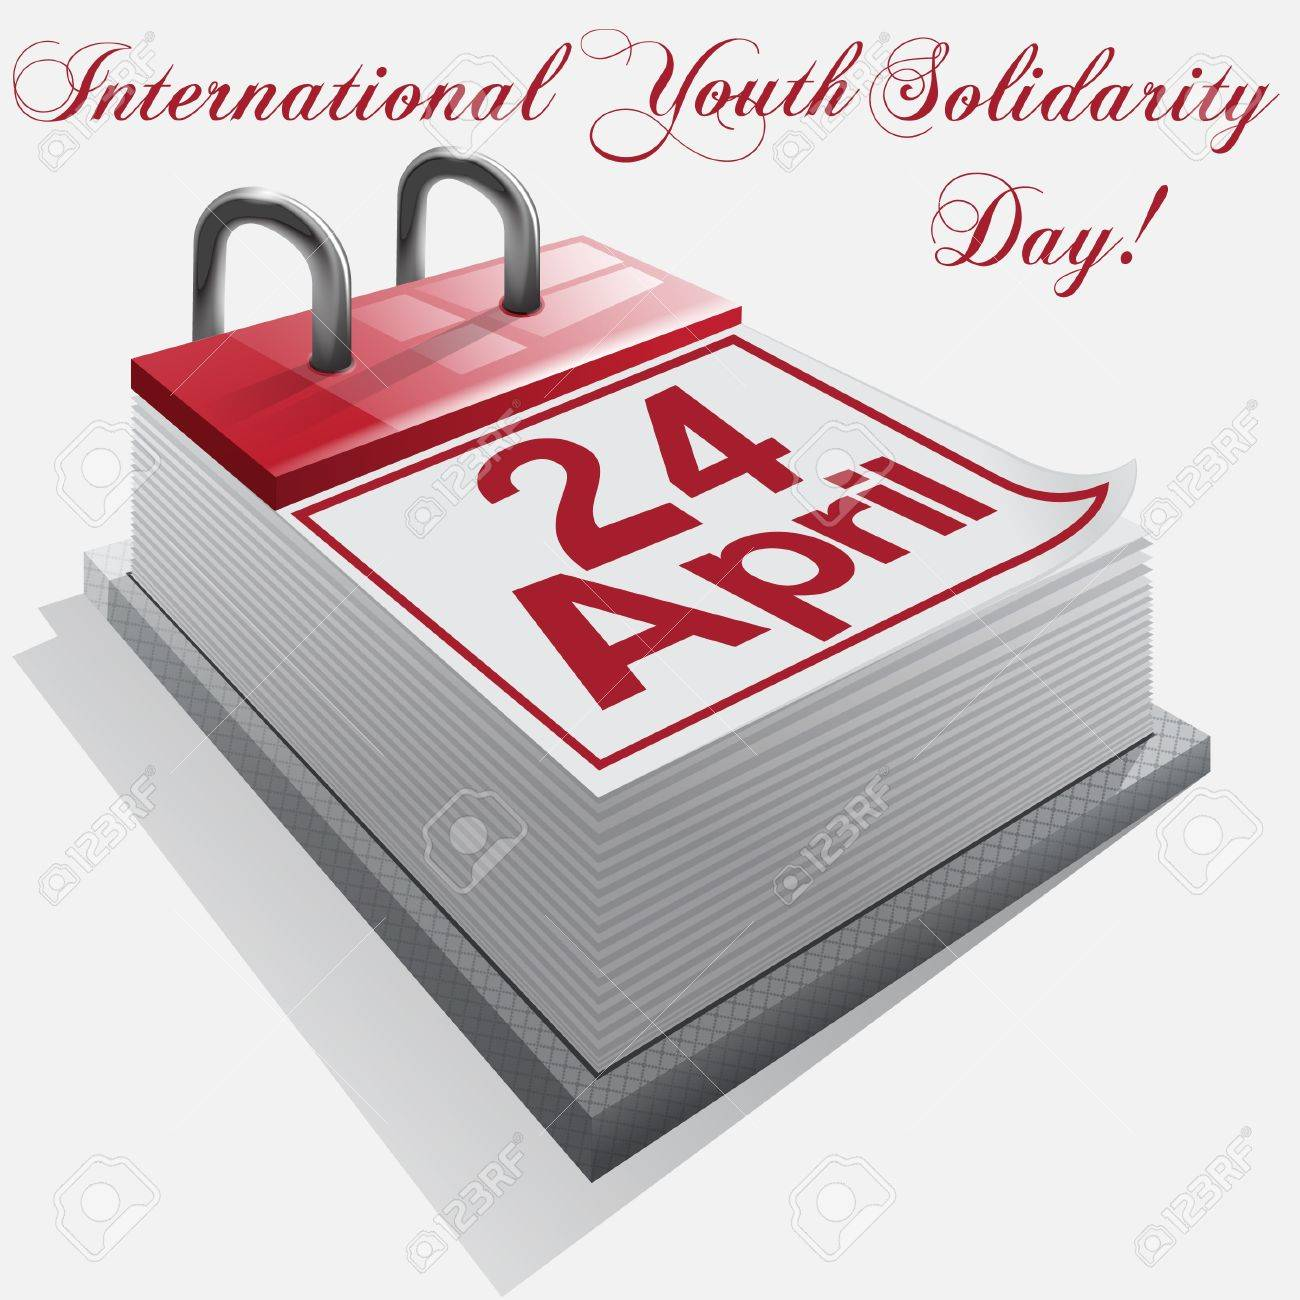 Calendar 24 April, International Youth Solidarity Day Stock Vector - 18134793